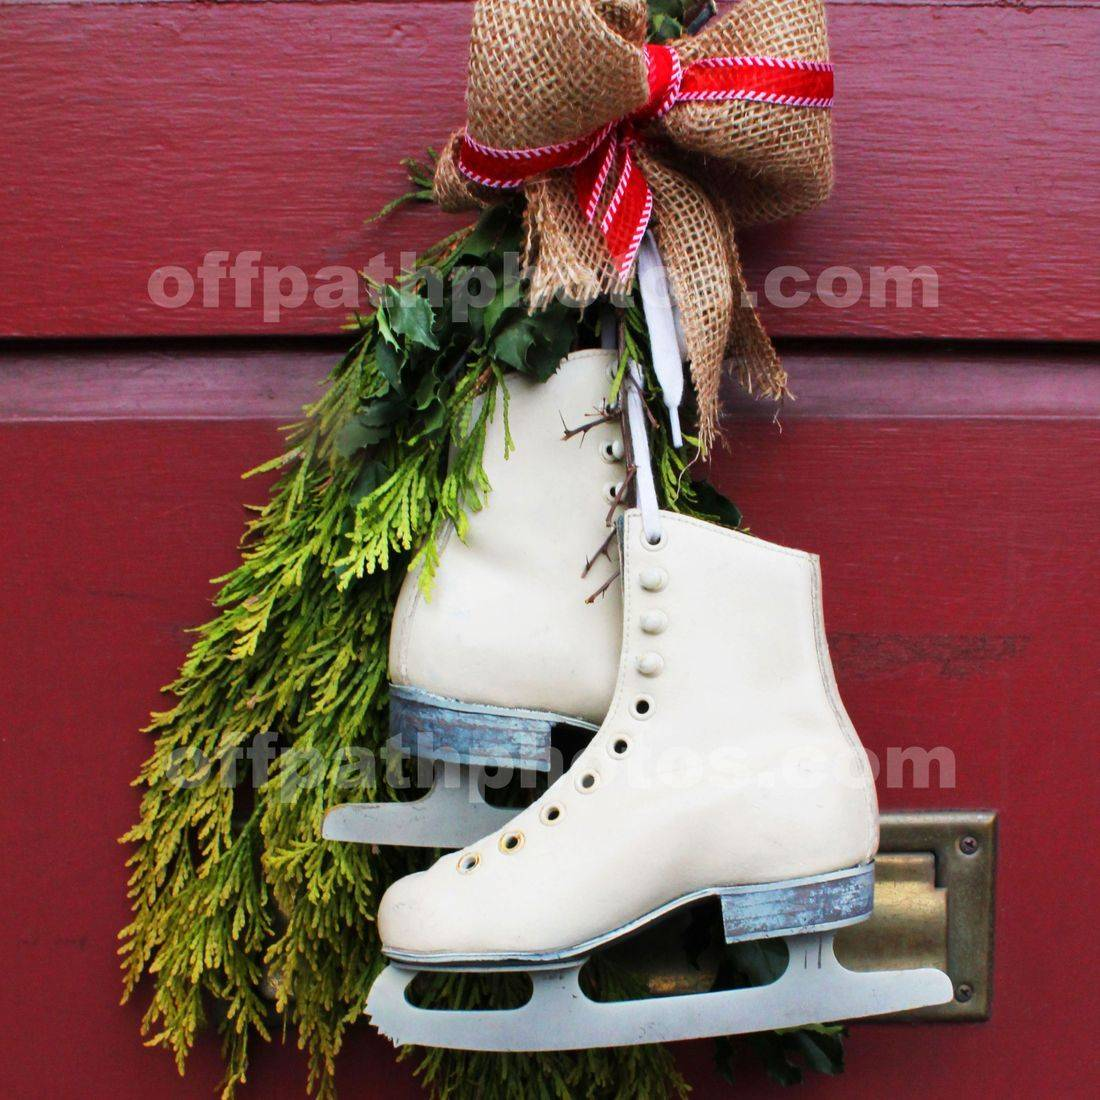 photography, Christmas, ice skates, winter, sports, snow, evergreens , stores, bows